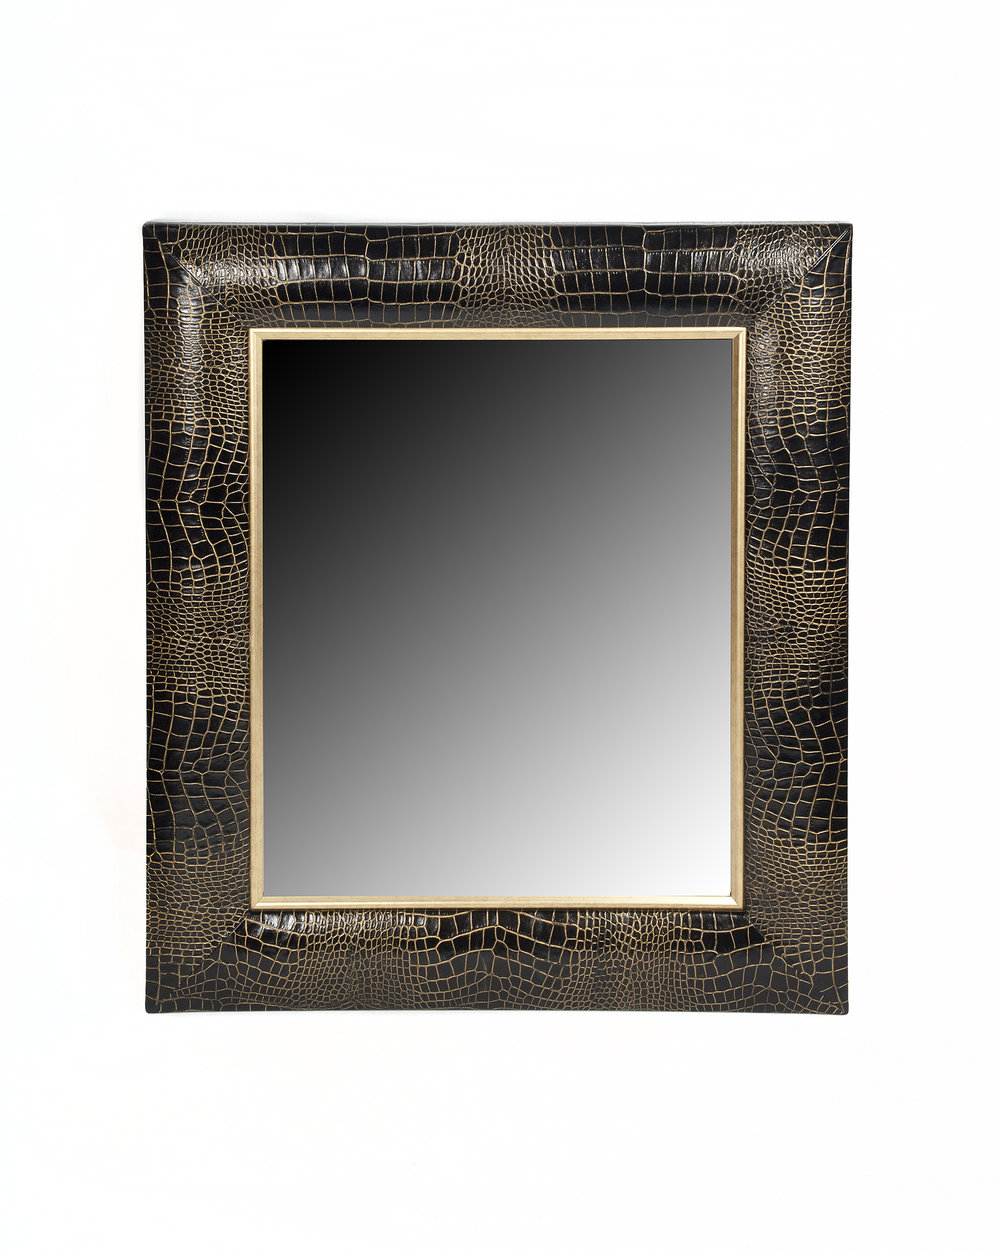 Croc Embossed Italian Leather Framed Mirror with hand-painted gold tipping